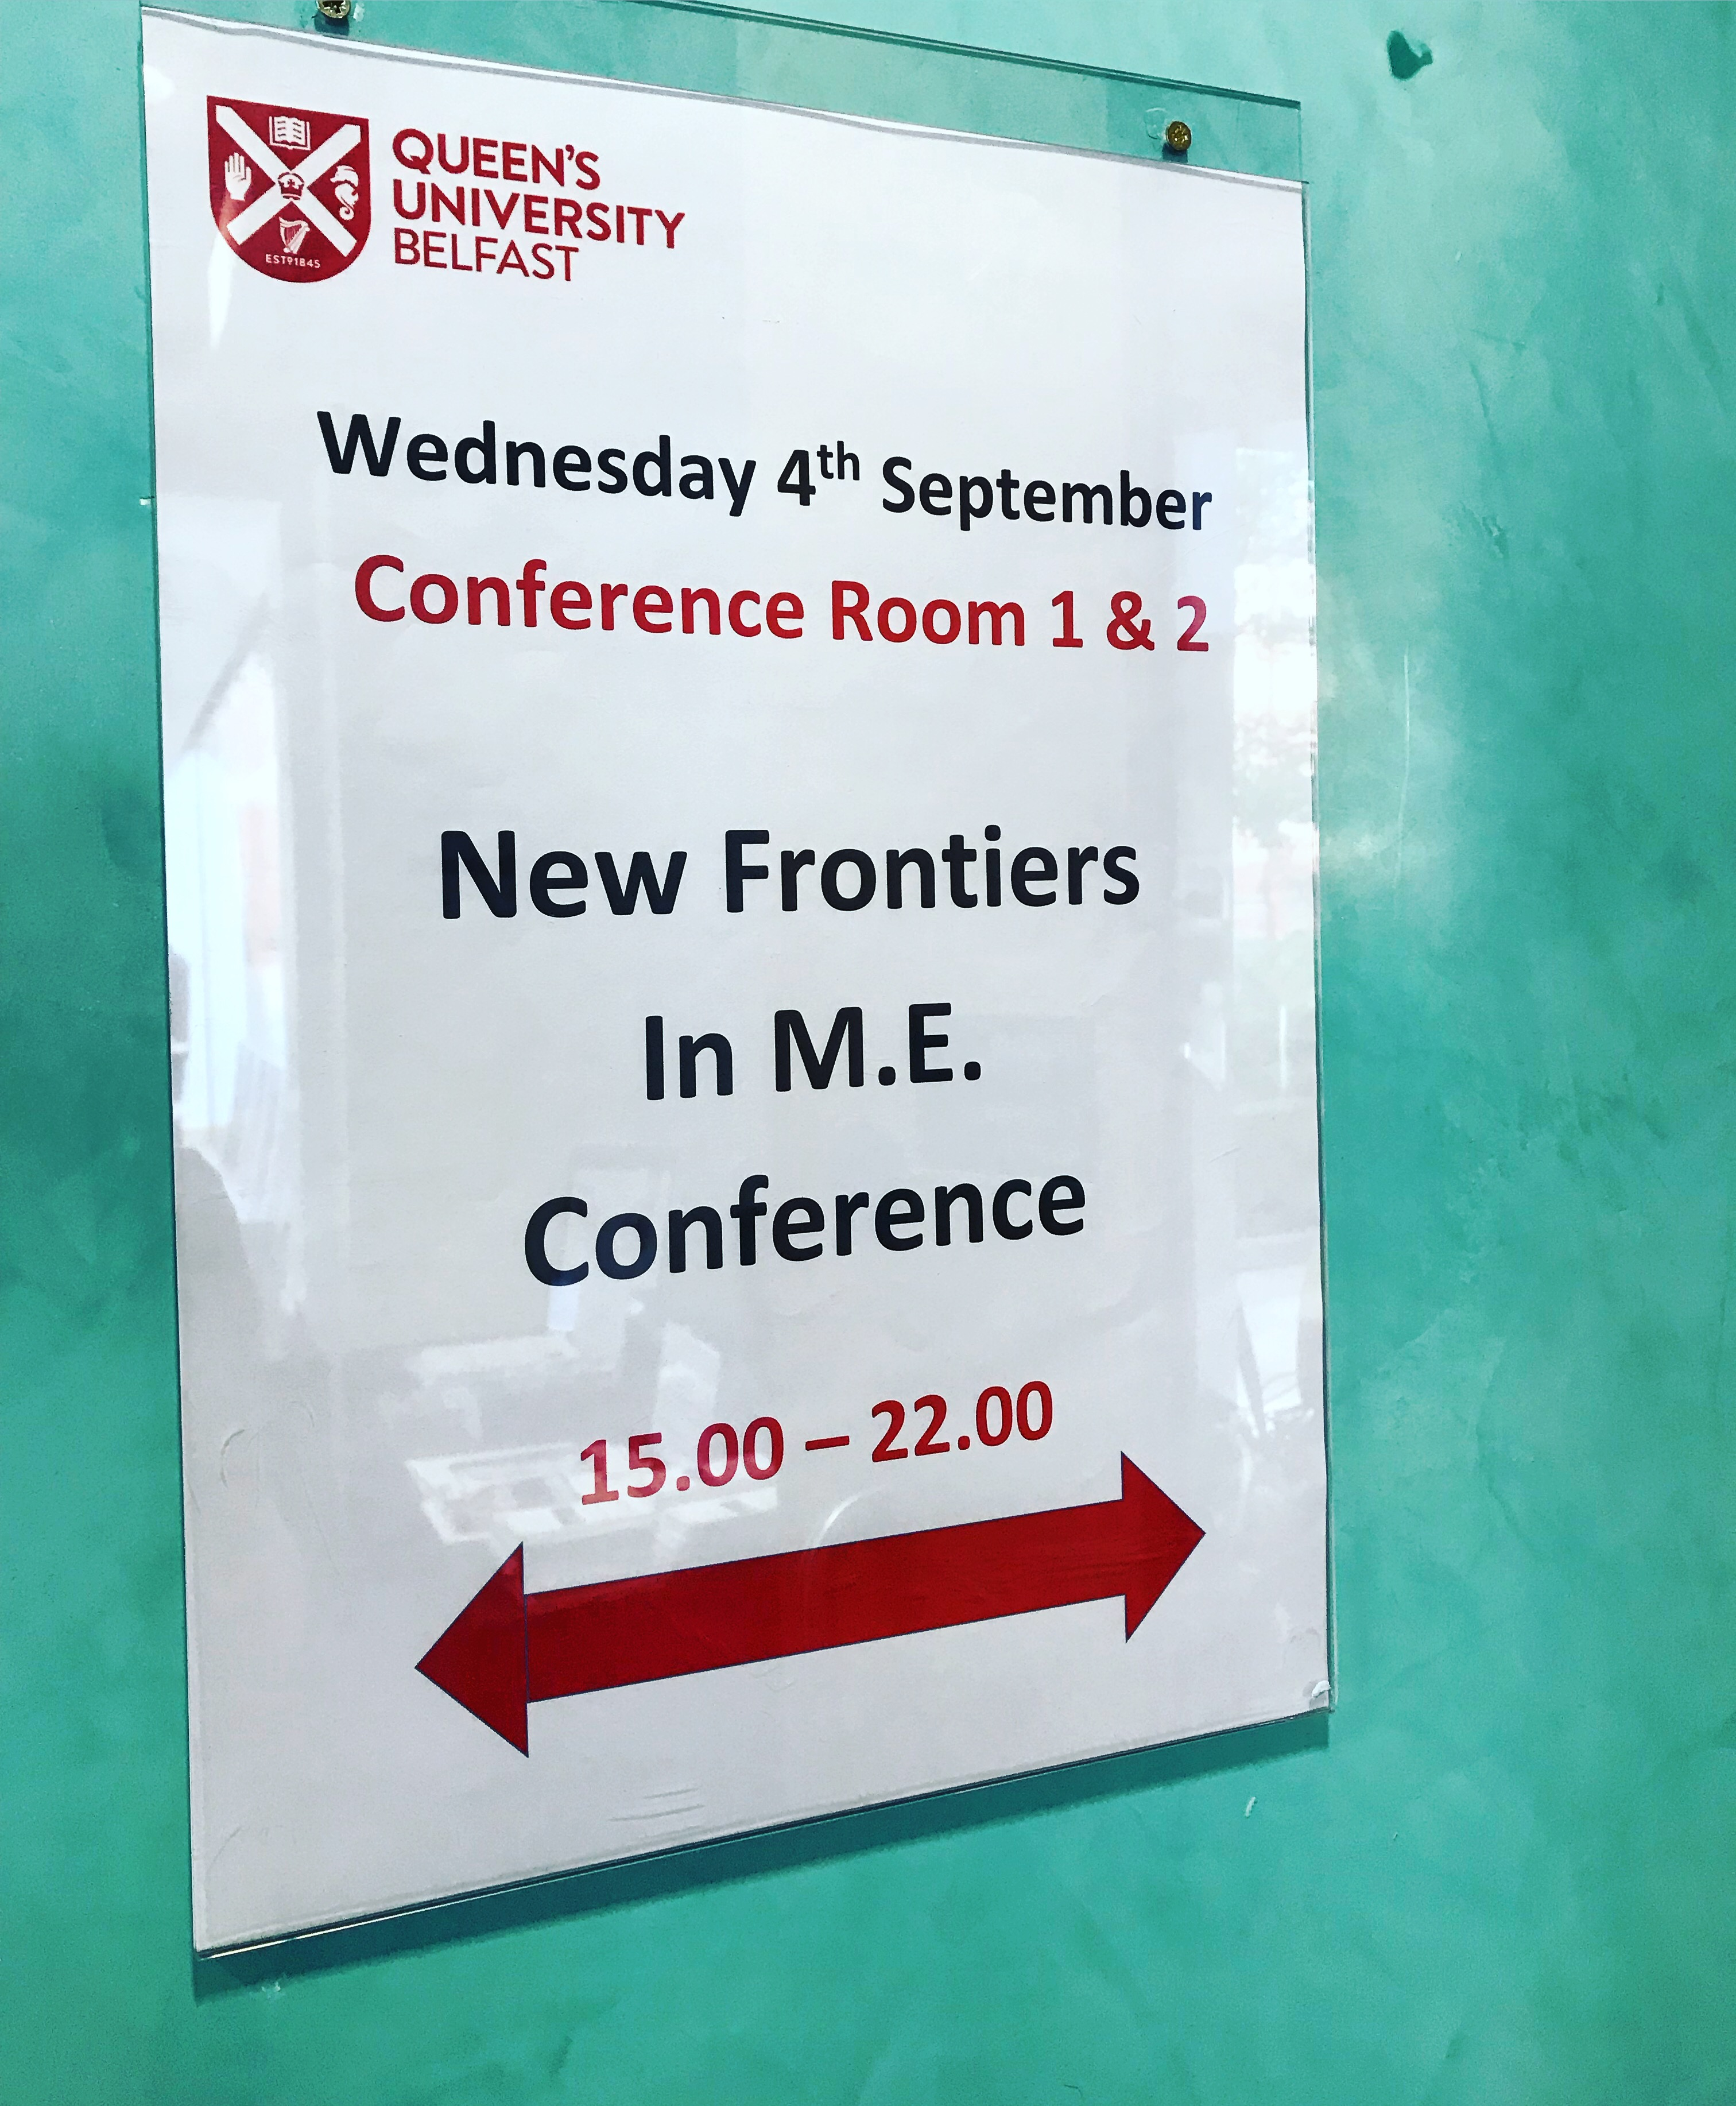 Frontiers in M.E. Conference Belfast